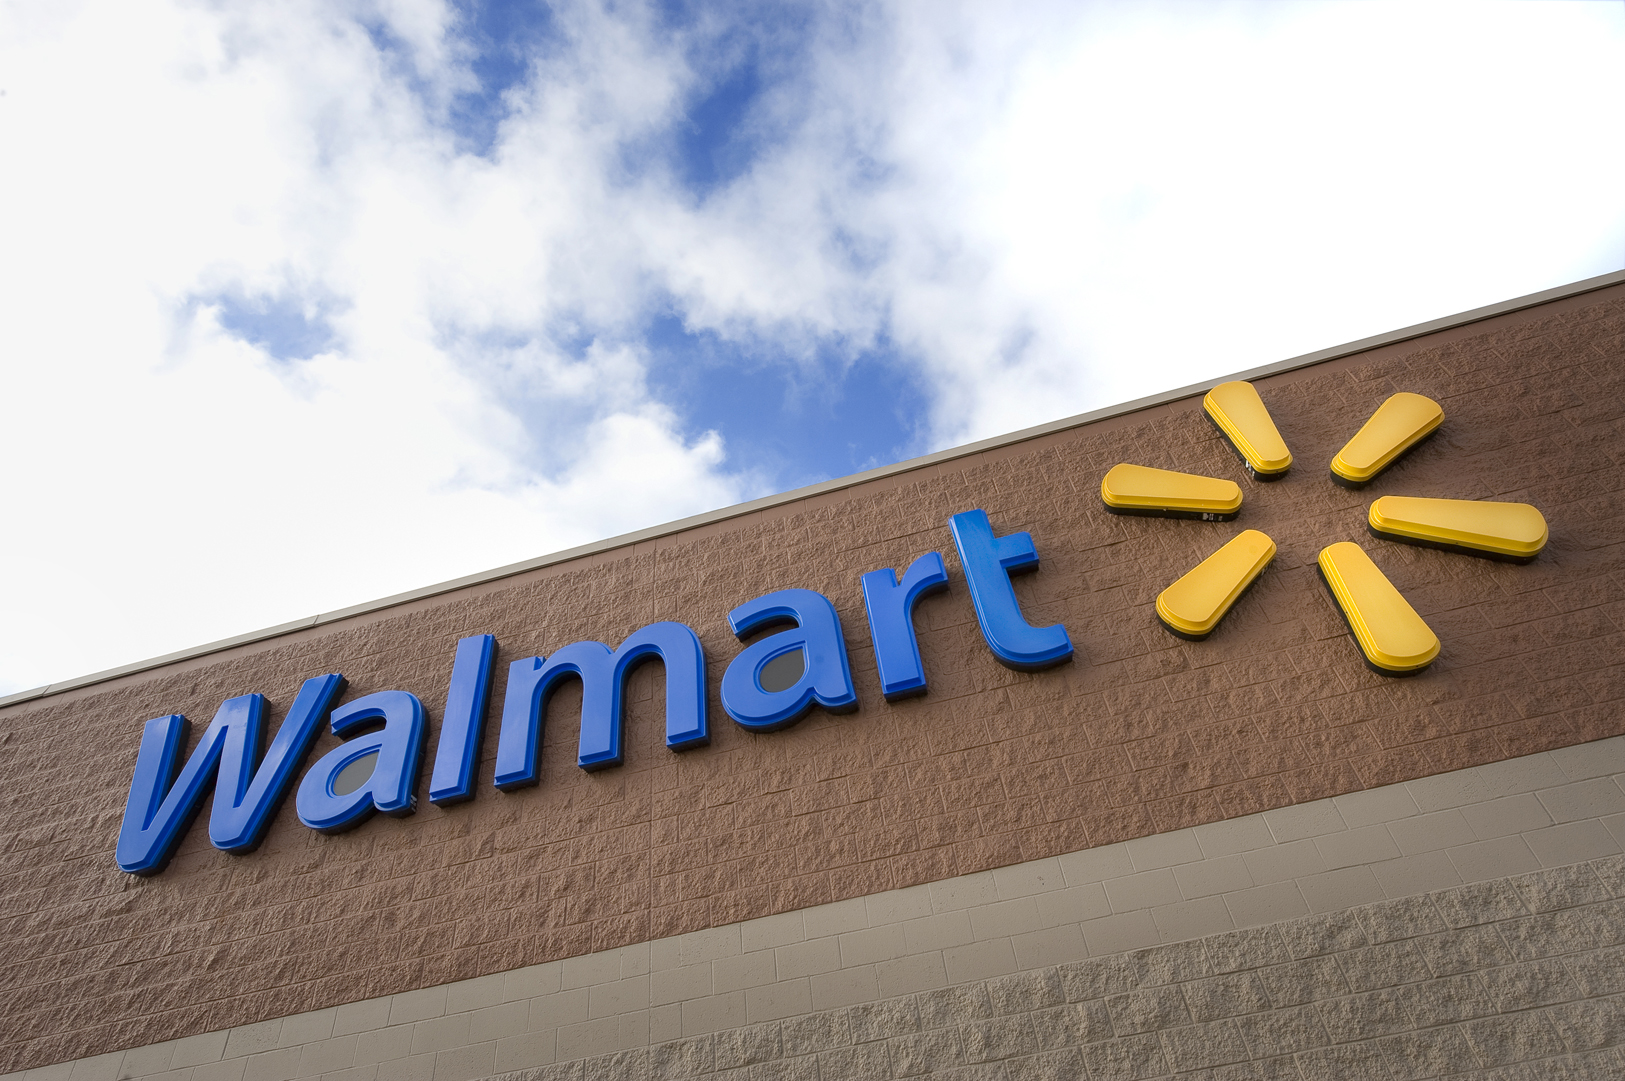 walmart selling health insurance, new jersey, ocala news, marion county news, walmart,